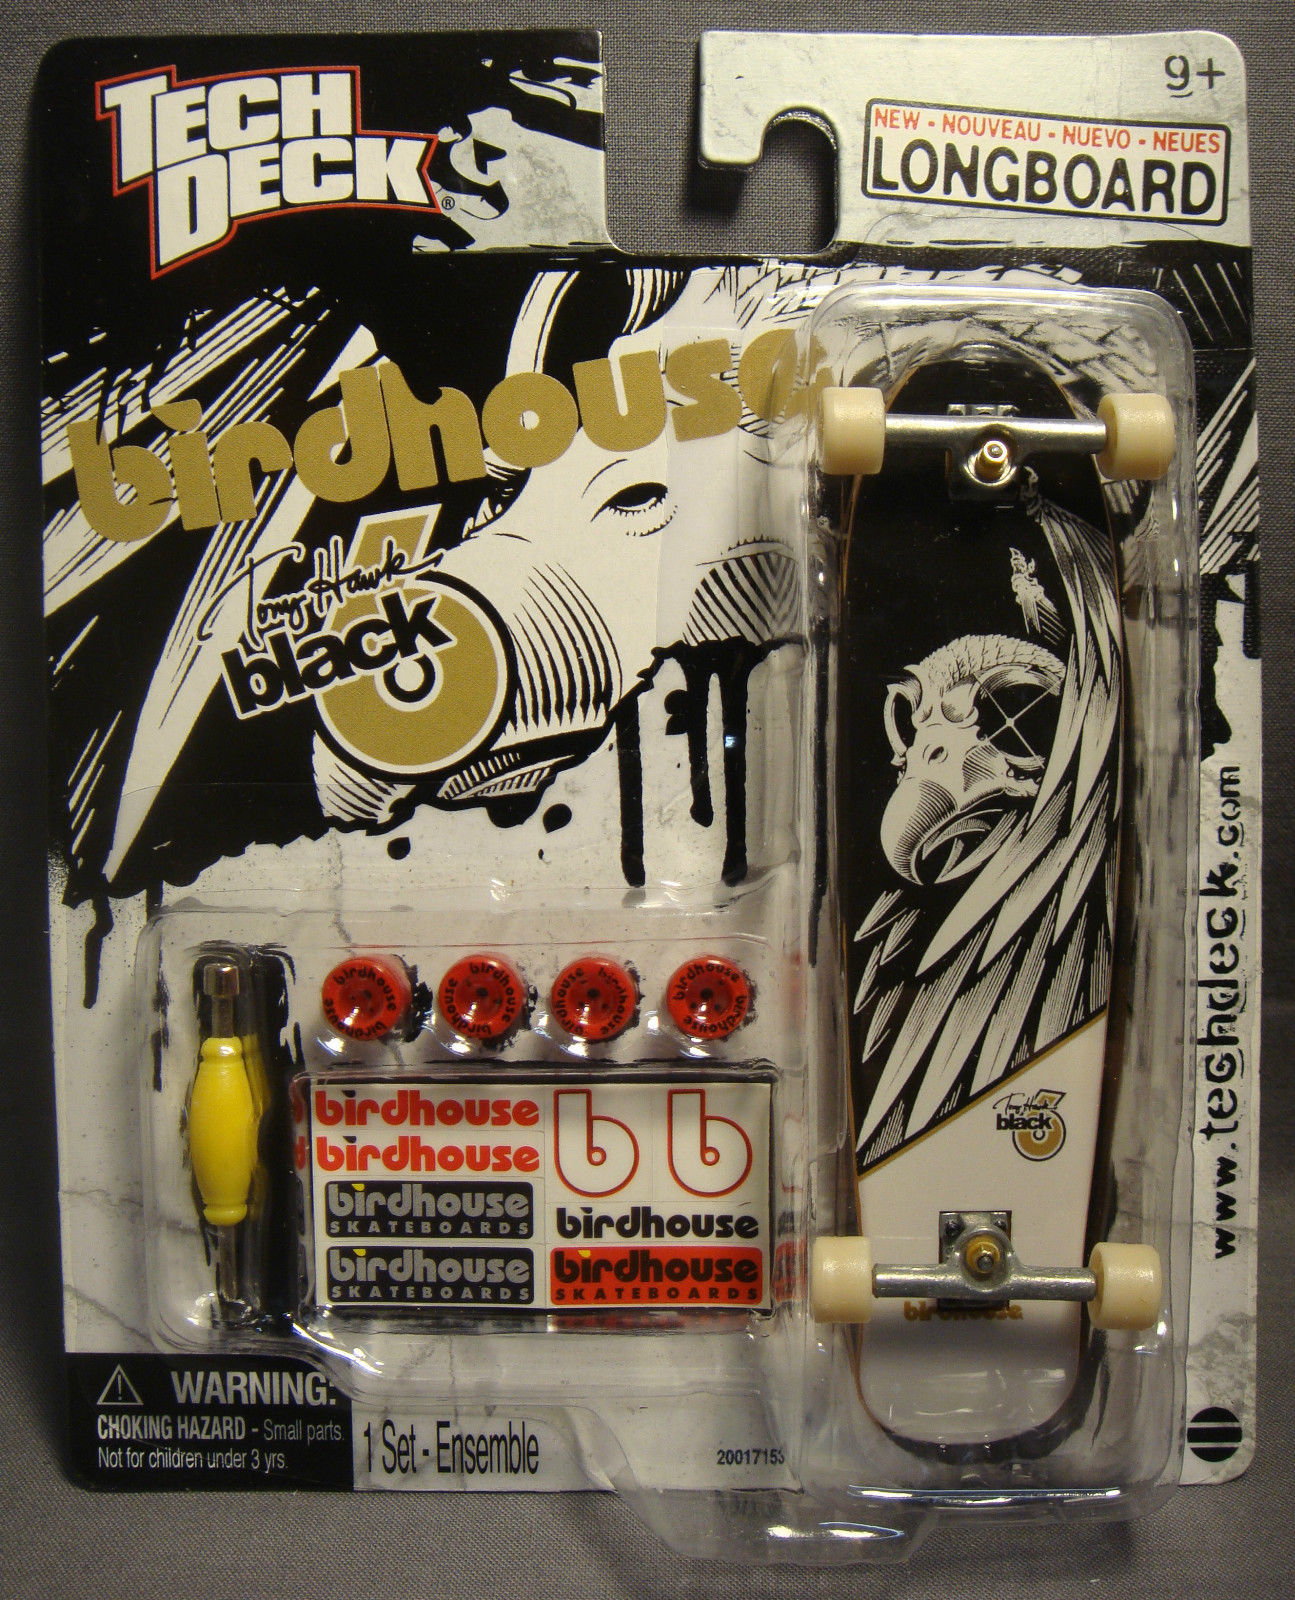 TECH DECK 120MM TONY HAWK BIRDHOUSE BLACK B LONGBOARD SKATEBOARD FINGERBOARD 9+